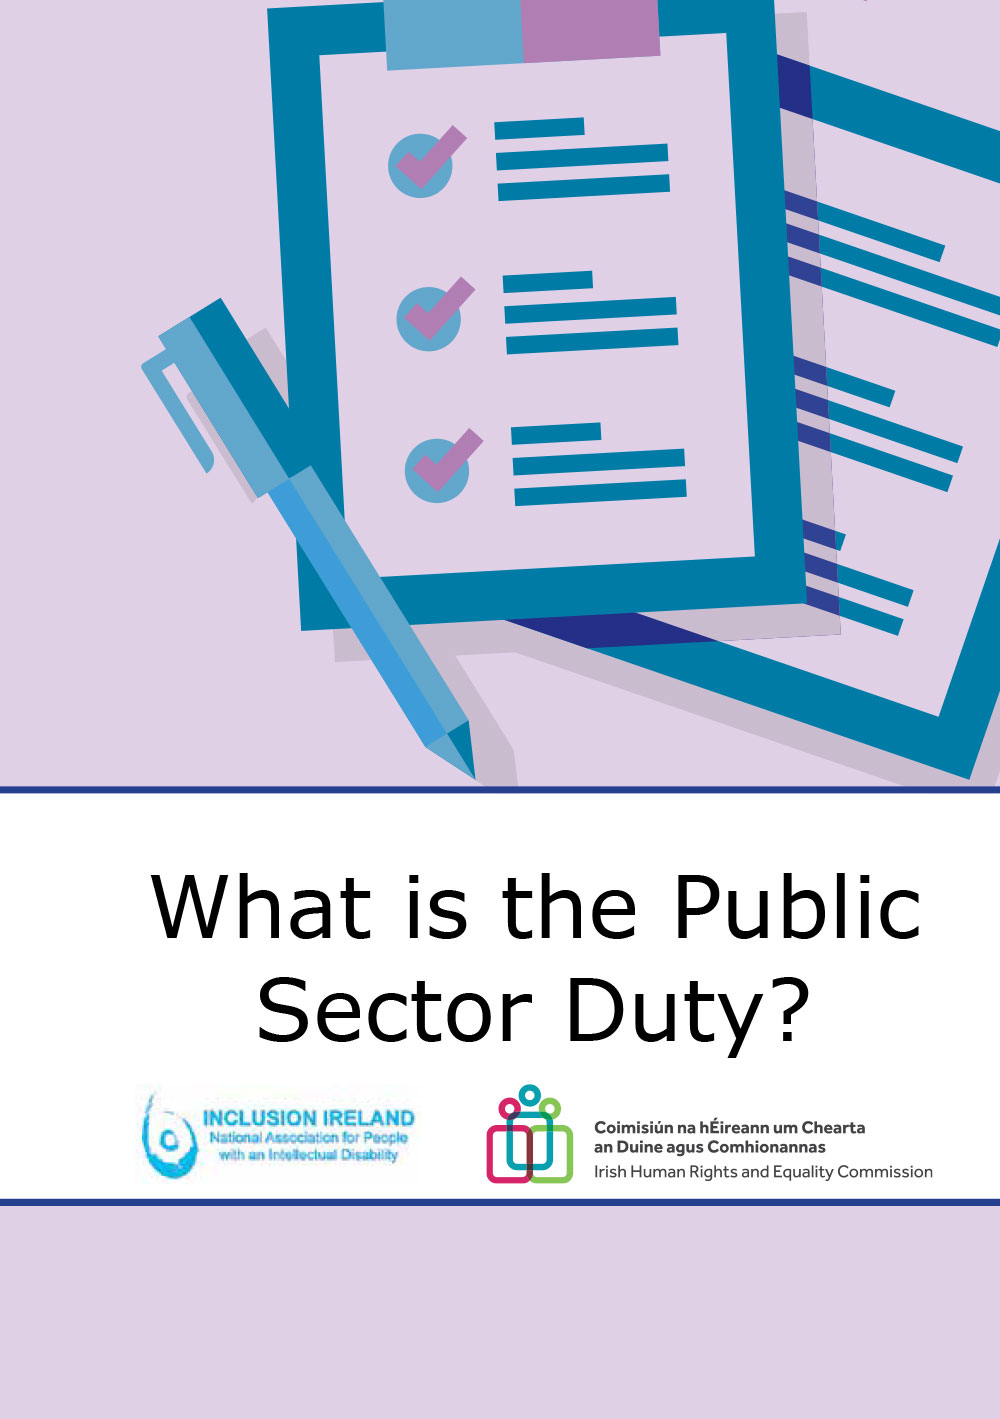 What is the Public Sector Duty?